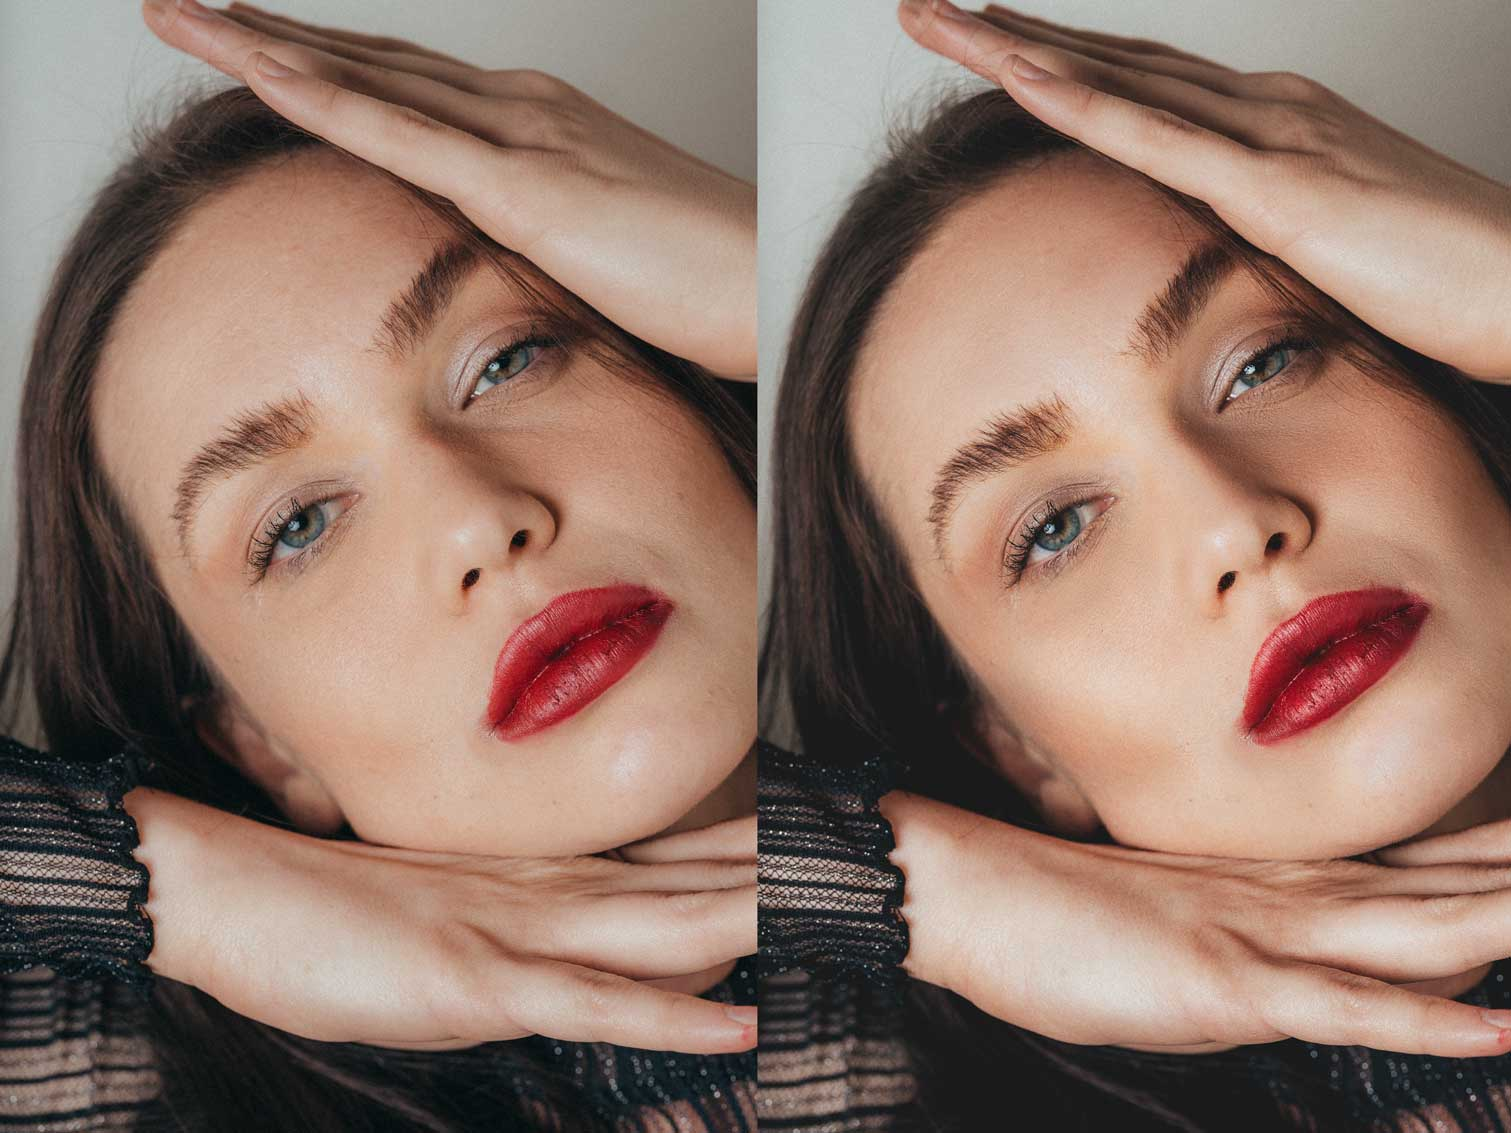 Before and After professional beauty retouching editing examples